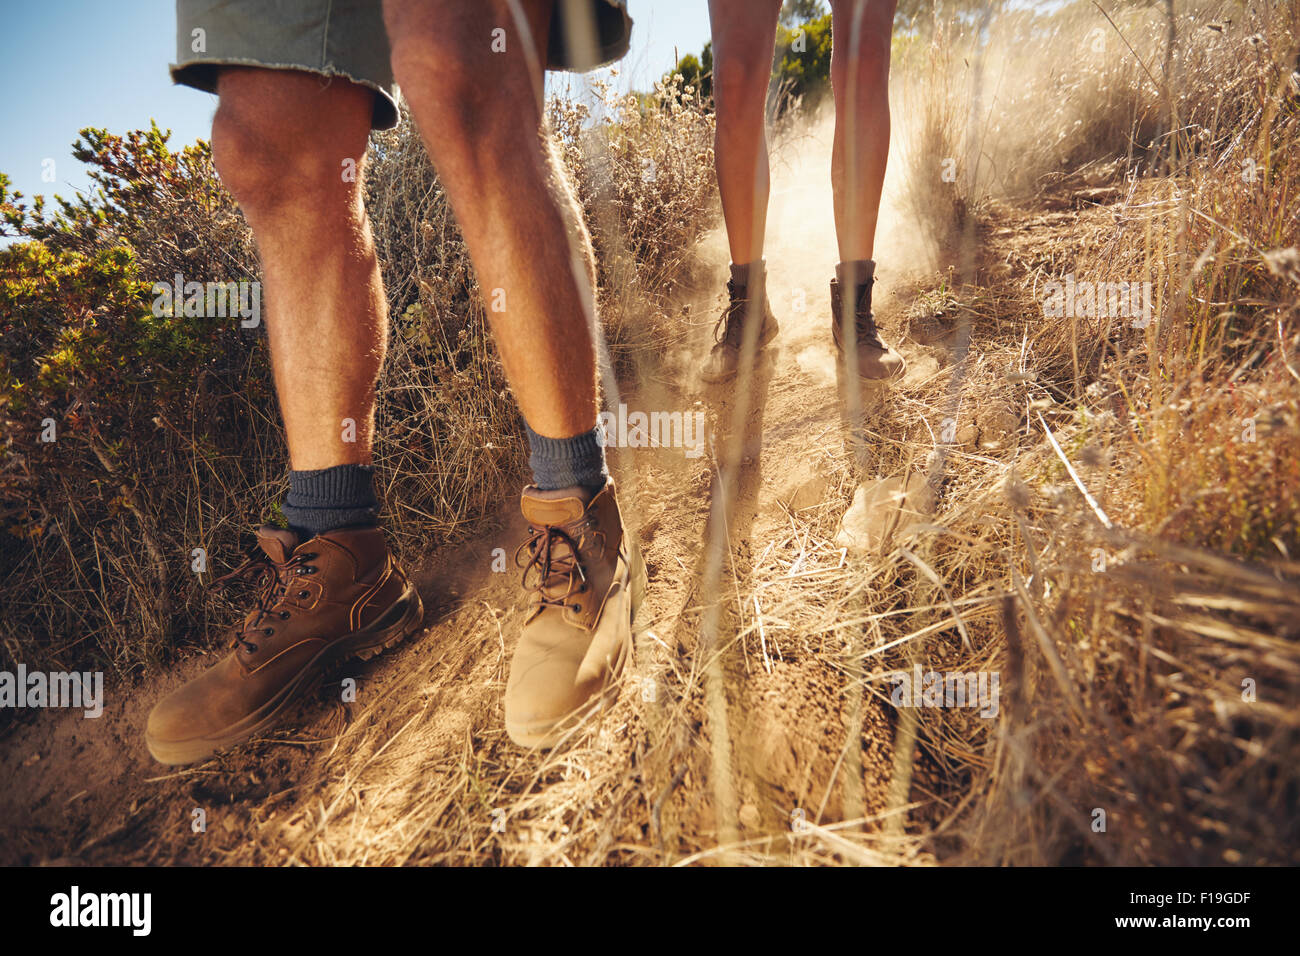 Low angle view of young people walking on mountain trail. Couple hiking on dirt path coming downhill. Cropped shot - Stock Image